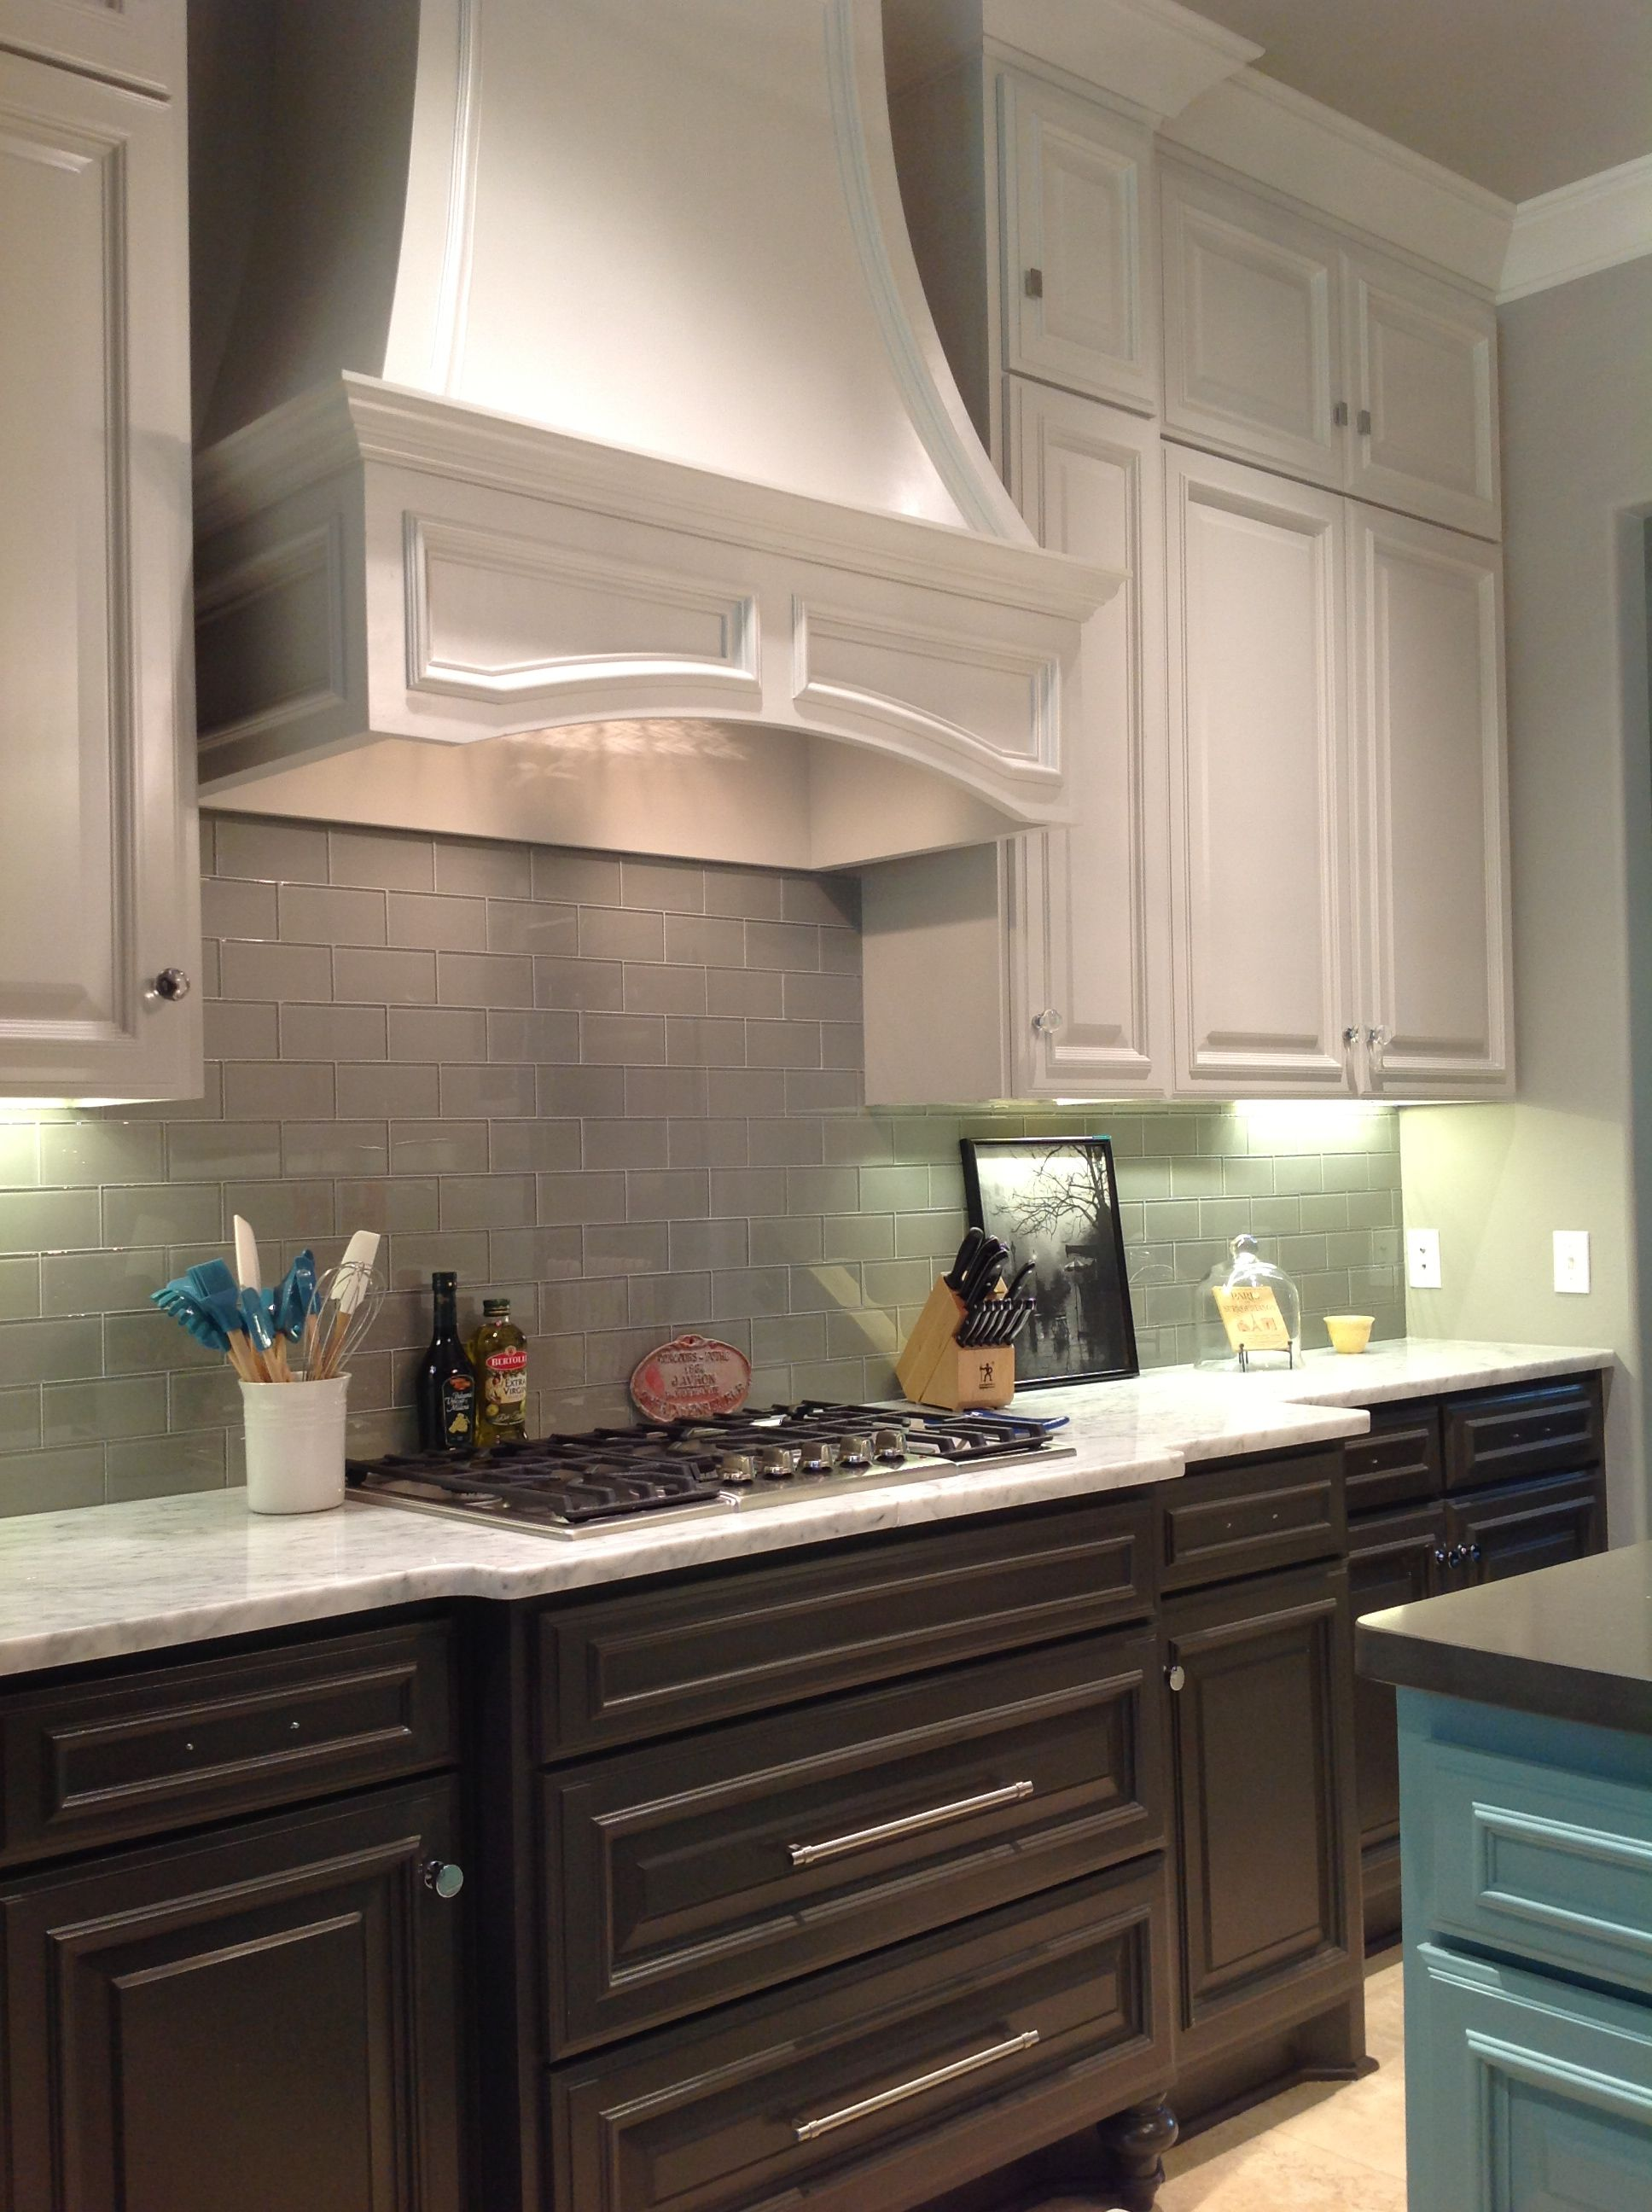 Best Sw Repose Gray Upper Cabinets Sw Urbane Bronze Lowers 400 x 300